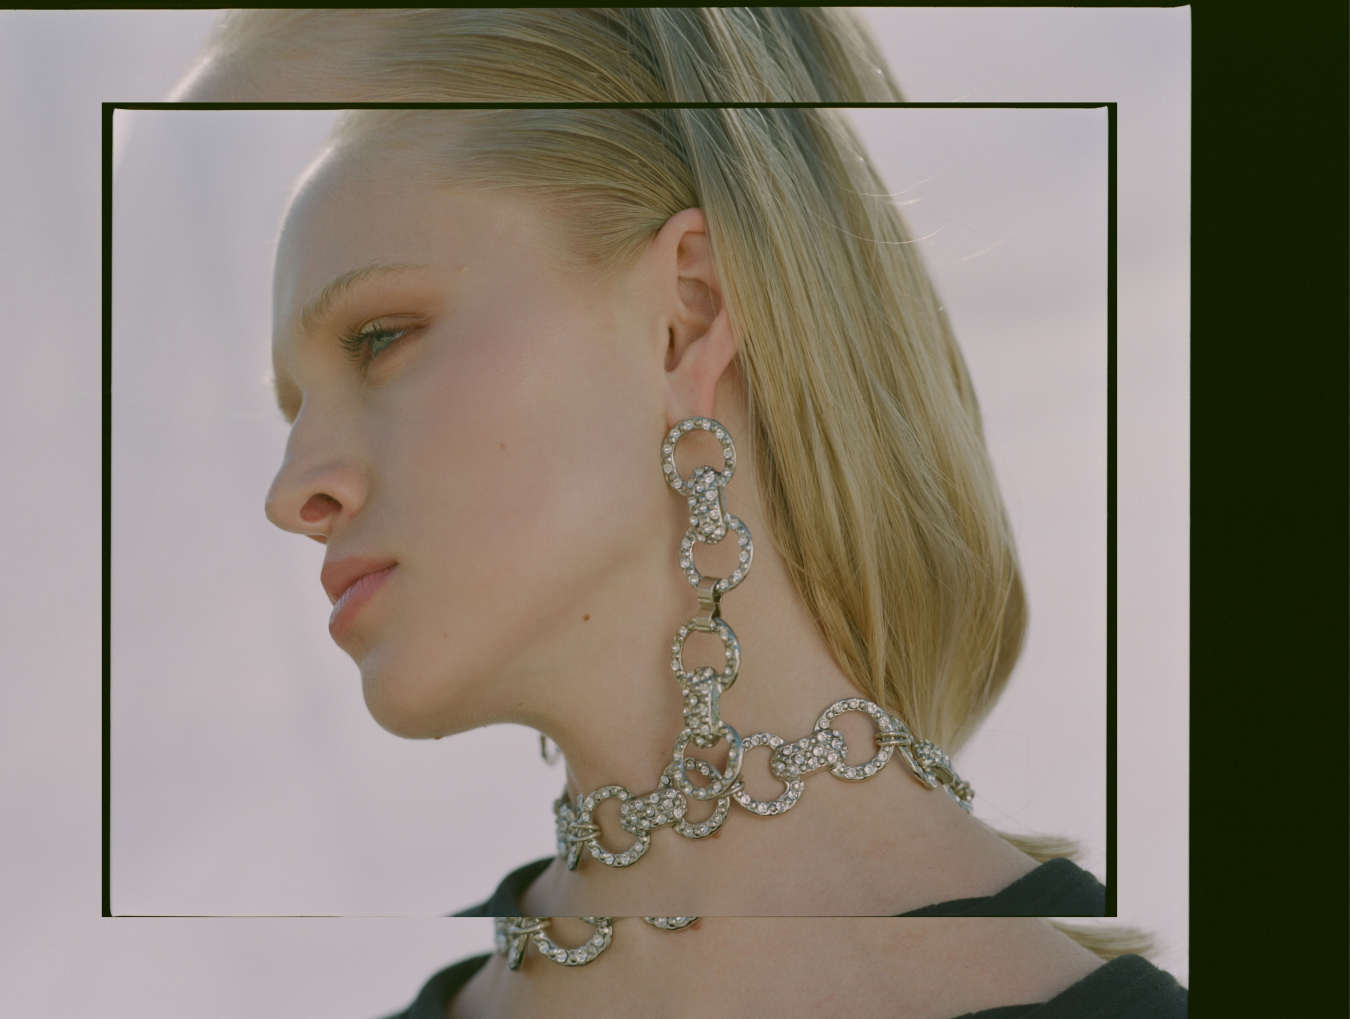 Balyck Earrings & Choker